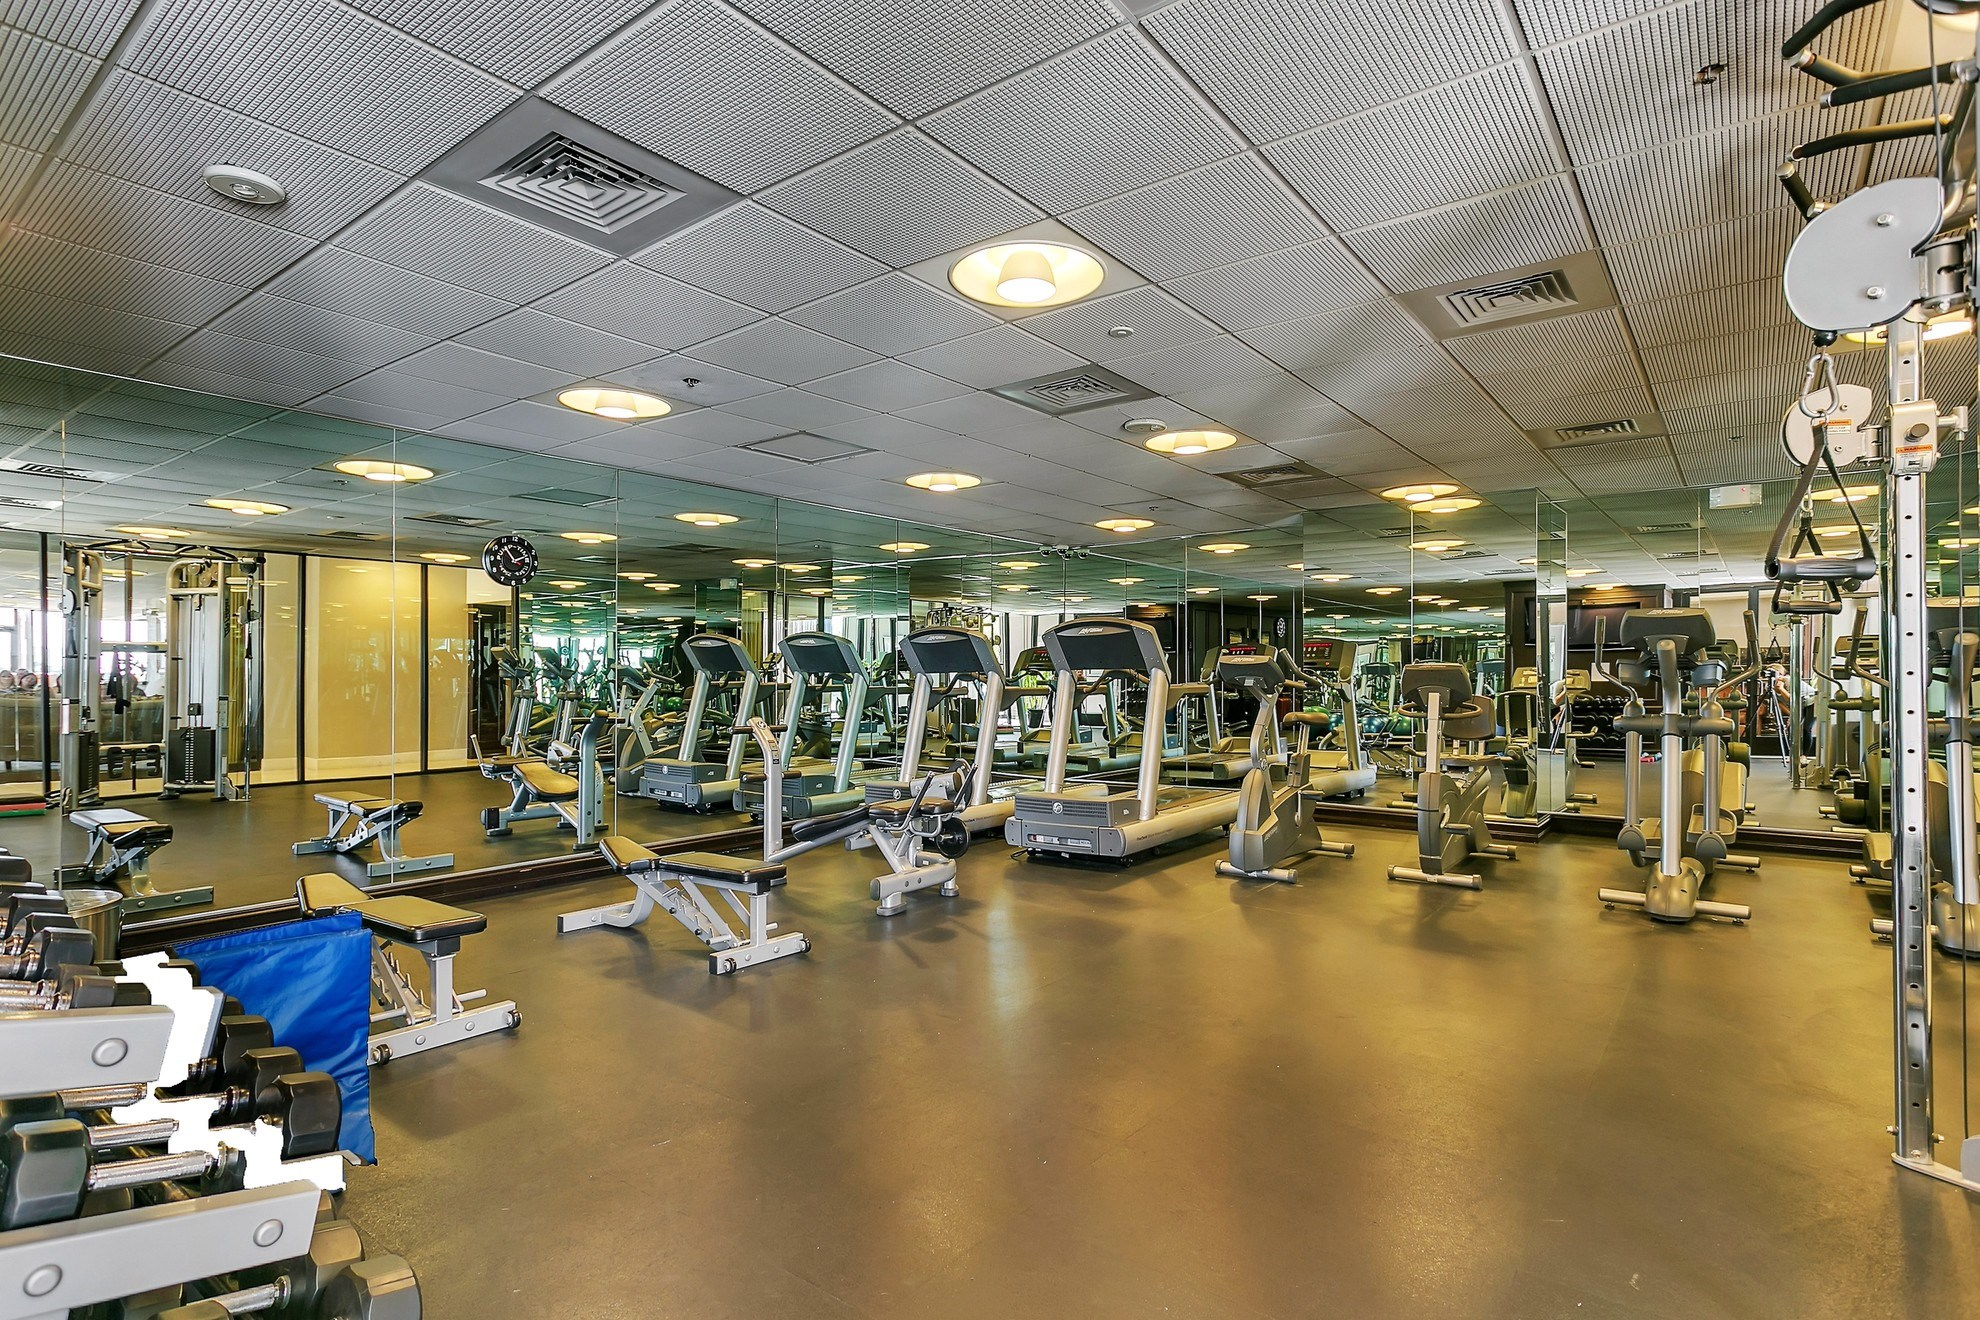 24/7 Fitness center with cardio and weights